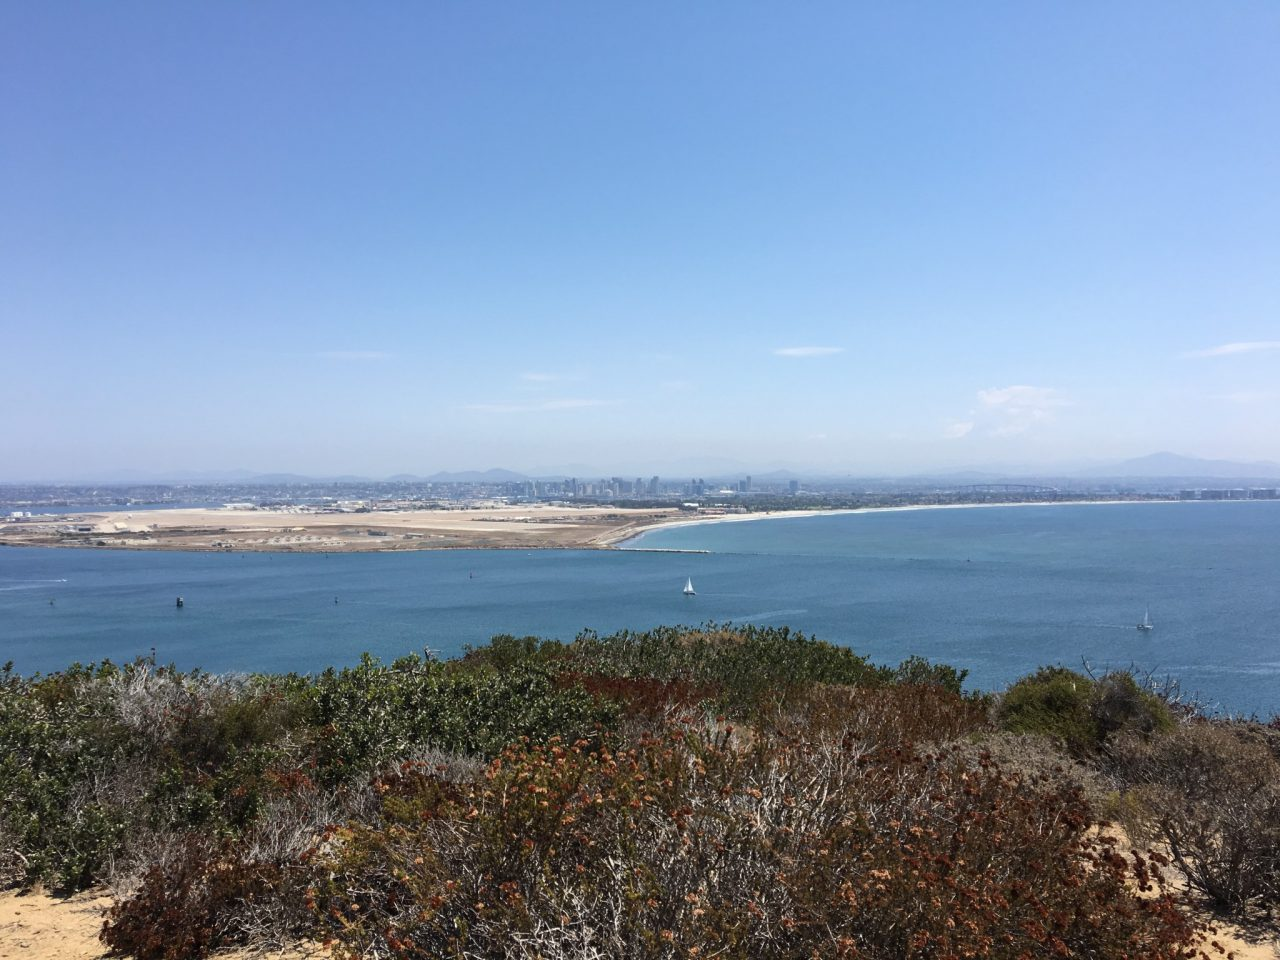 View of Coronado Beach, San Diego downtown, and Mexico from Point Loma